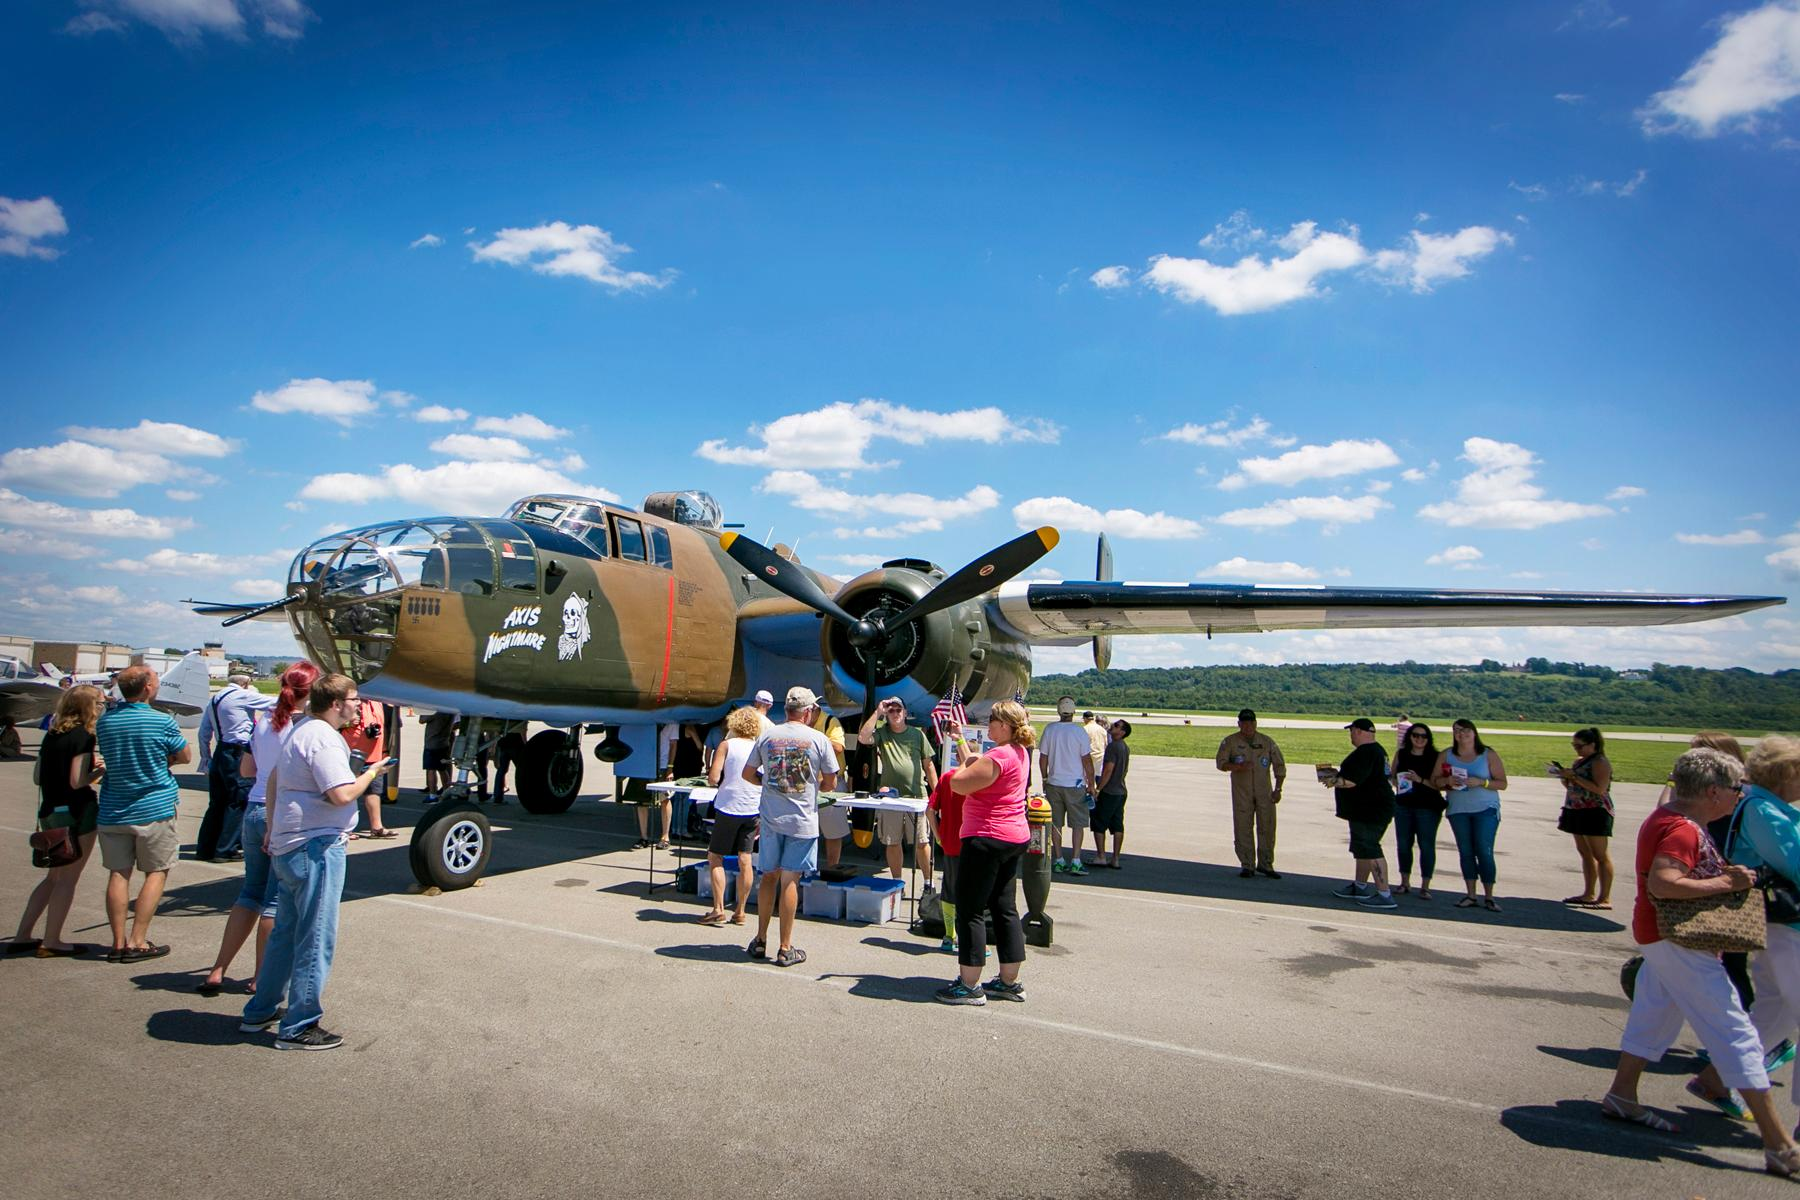 Cincinnati Museum Center held its annual 1940s Day celebration on Saturday, August 12 at Lunken Airport. The day included live music, swing dancing, vintage airplanes, war veterans, and plenty of other highlights. / Image: Mike Bresnen Photography // Published: 8.13.17